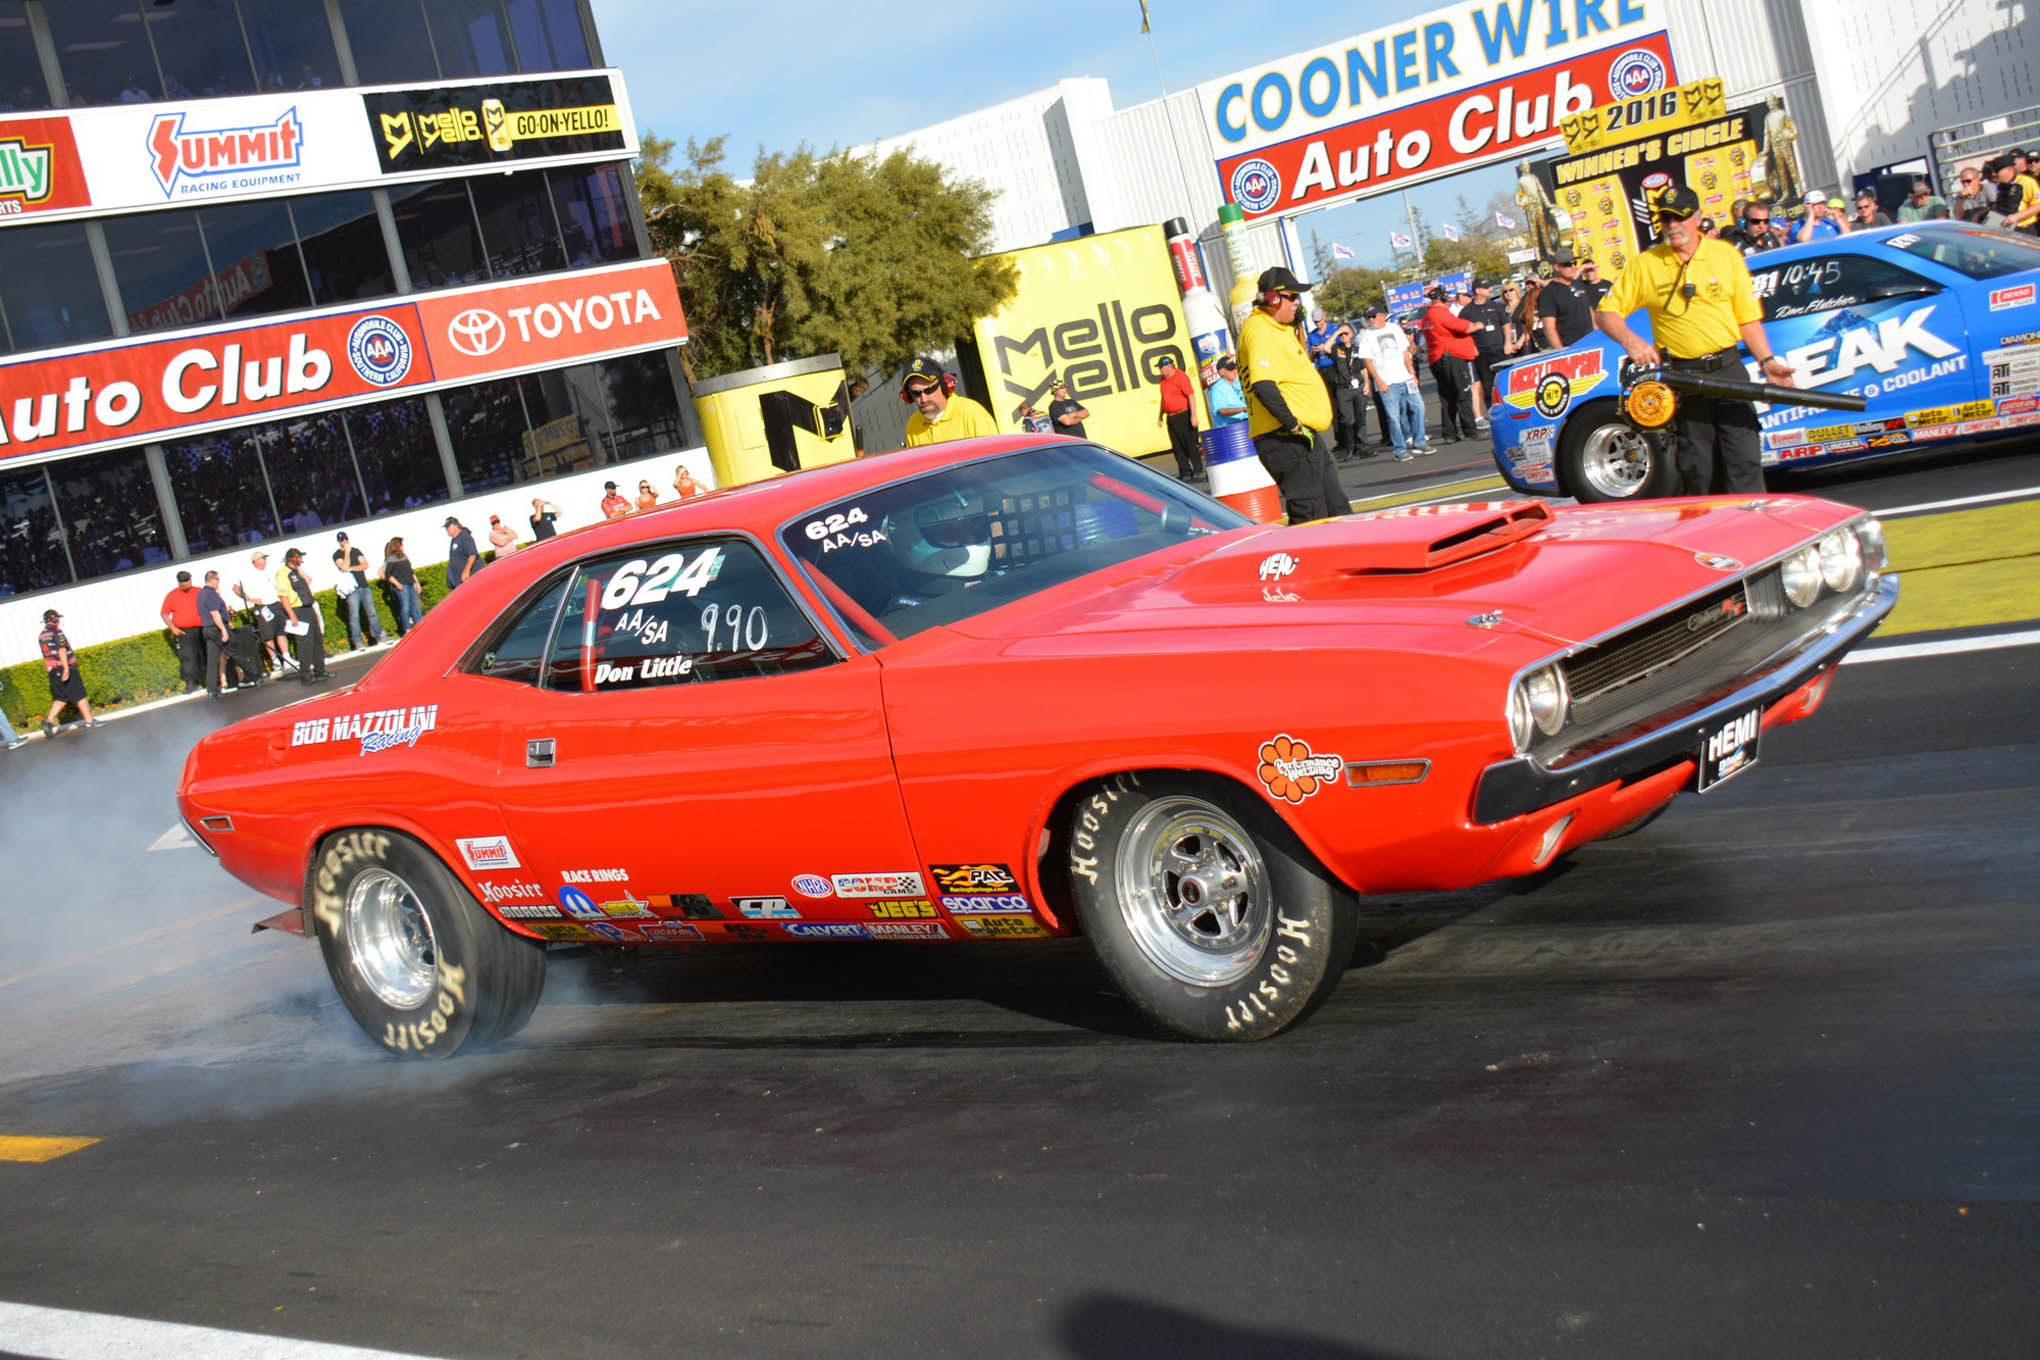 Veteran racer and multiple event winner Don Little was the last Mopar standing in Stock Eliminator. His Hemi Challenger made it to the finals only to breakout by a sliver.